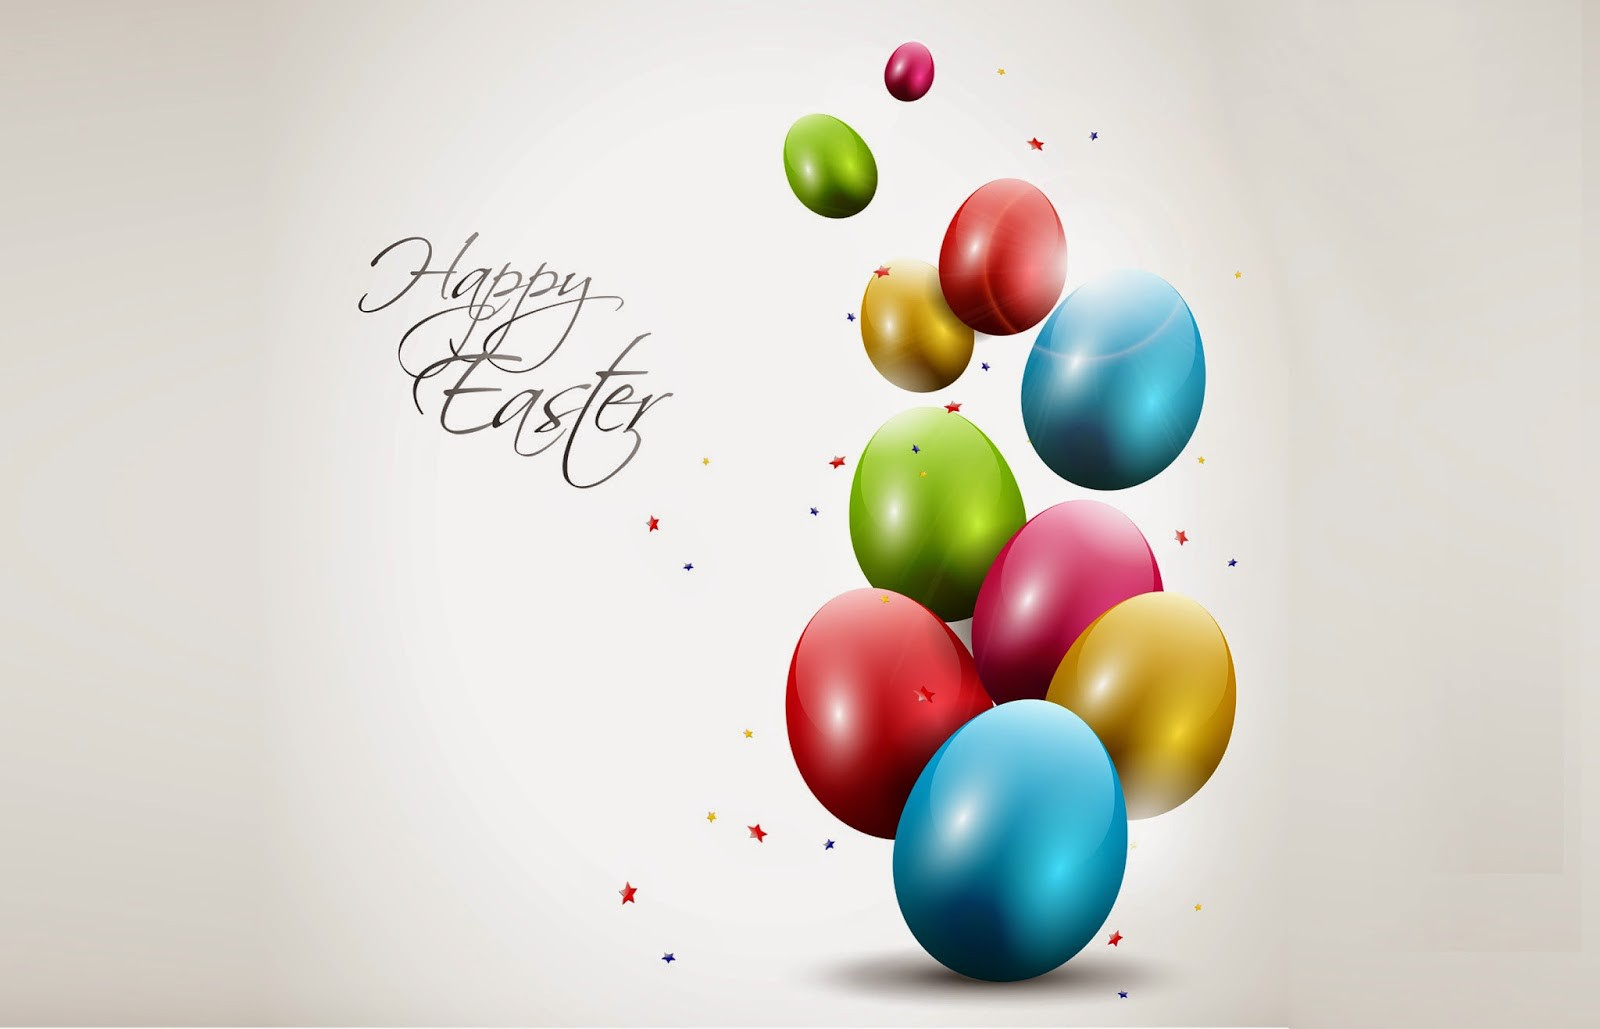 Happy Easter Egg 2018 Wallpapers   New HD Wallpapers 1600x1029